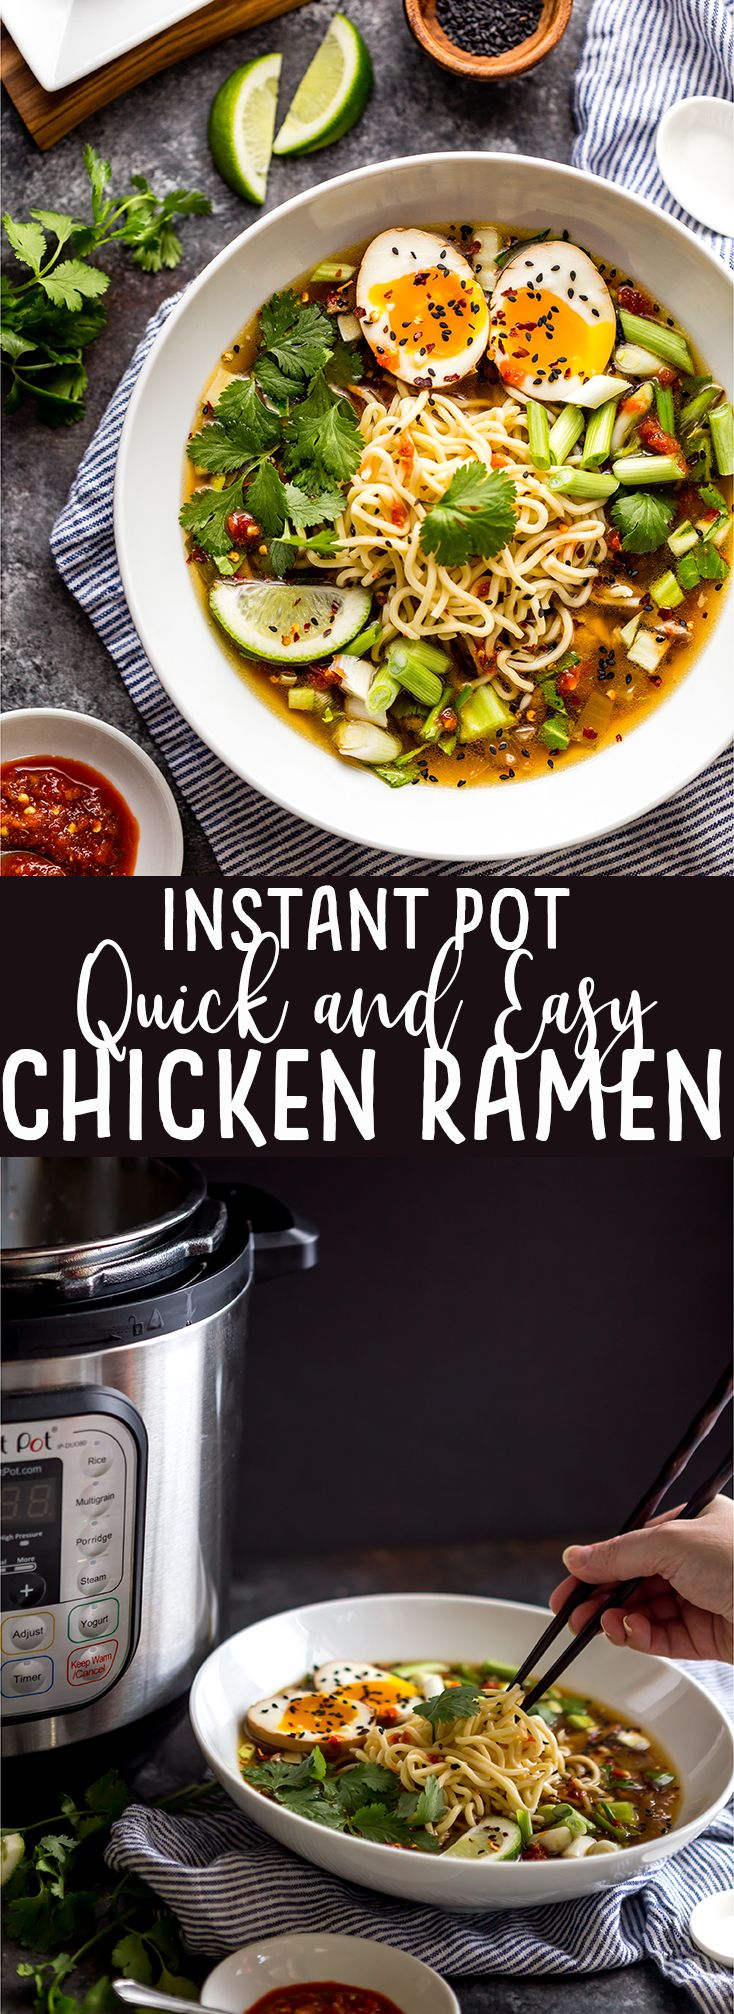 This Instant Pot Chicken Ramen makes a delicious and flavorful ramen